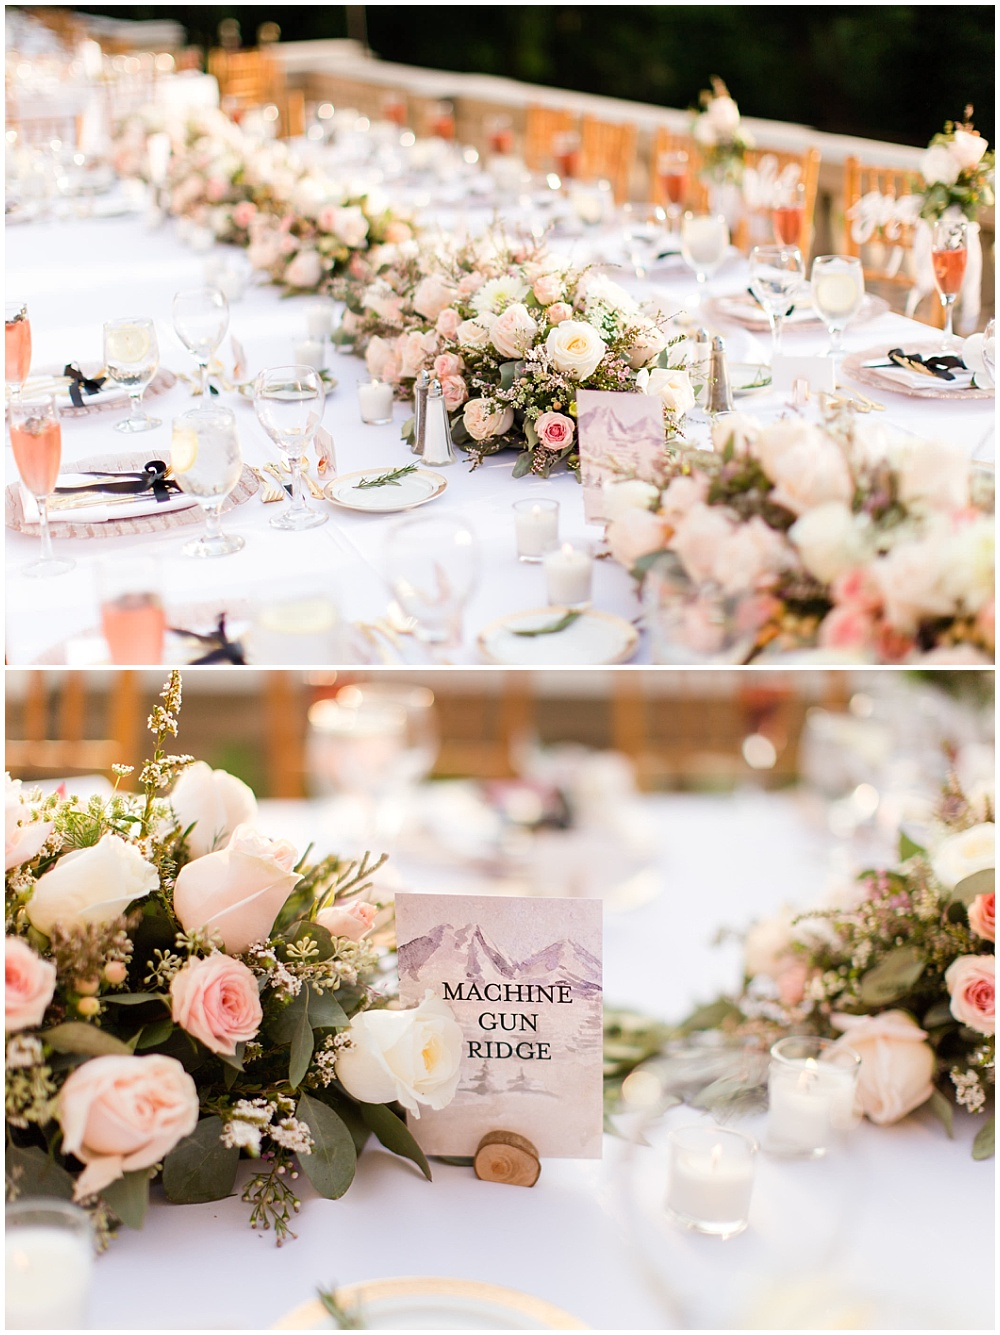 draped head table flowers; custom table numbers; rose toast with lavender sprig; rose gold chargers; gold flatware; mixed metallics; wedding tablescape; white wedding | Outdoor Terrace Wedding, Laurel Hall - Danielle Harris Photography; Jessica Dum Wedding Coordination